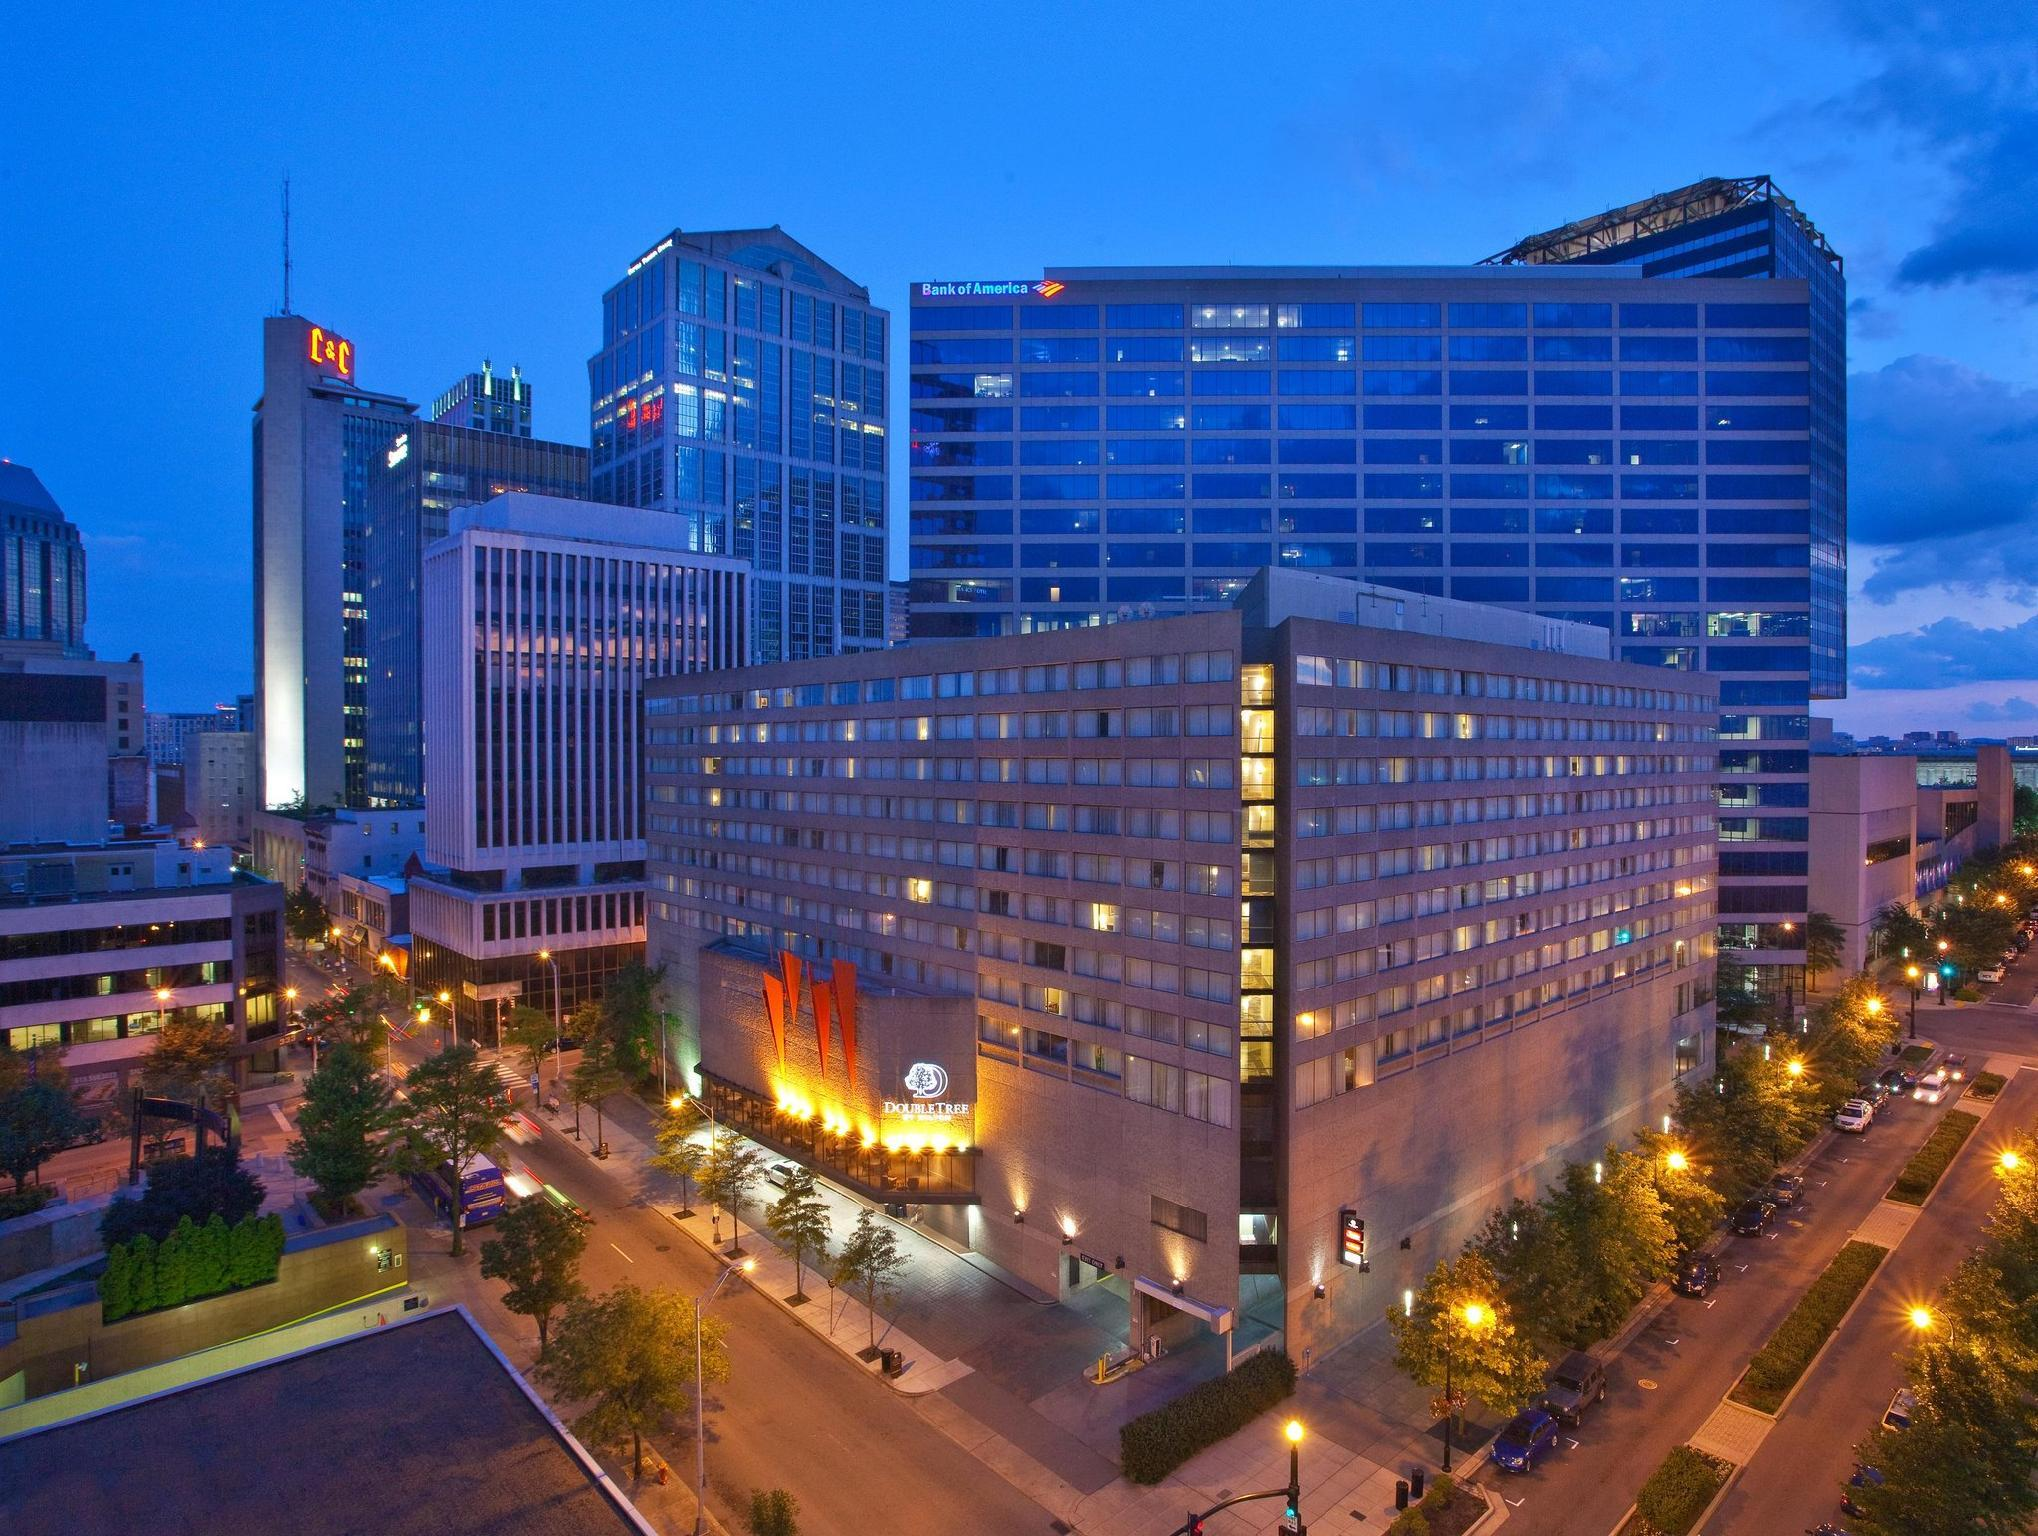 Doubletree By Hilton Downtown Nashville Hotel image